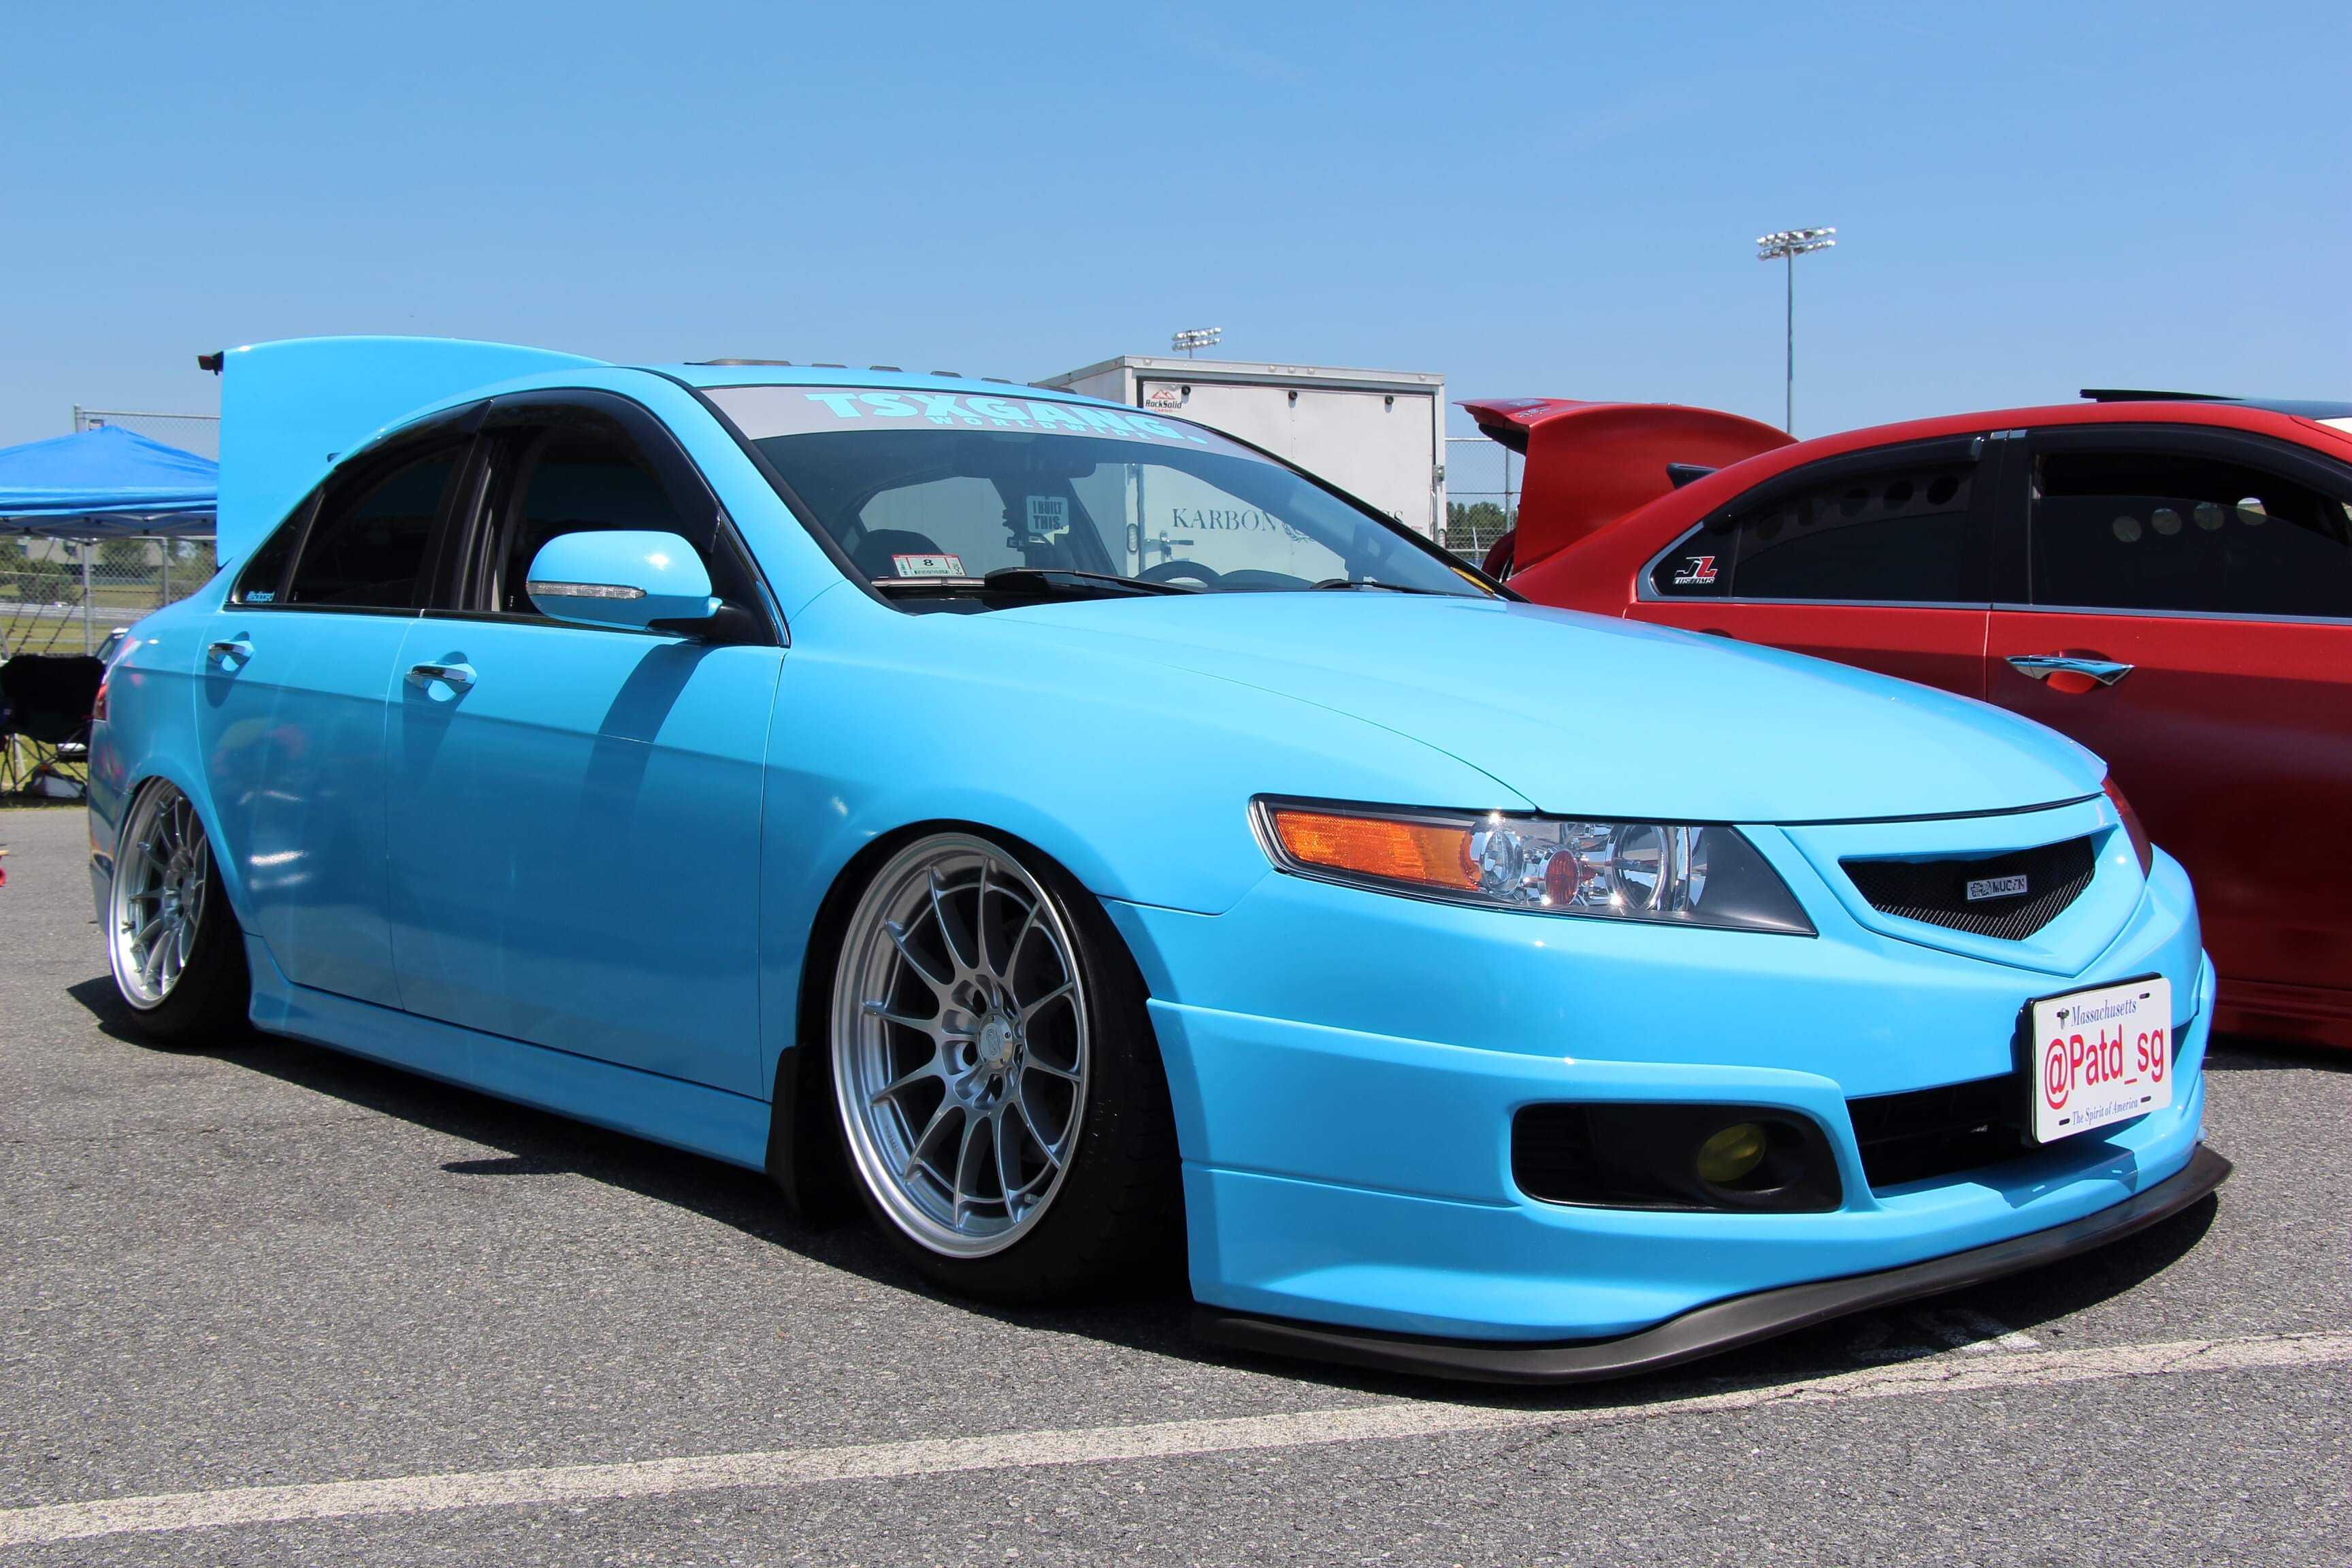 04 Patrick Despin 2007 Acura TSX PASMAG TBGLIVE